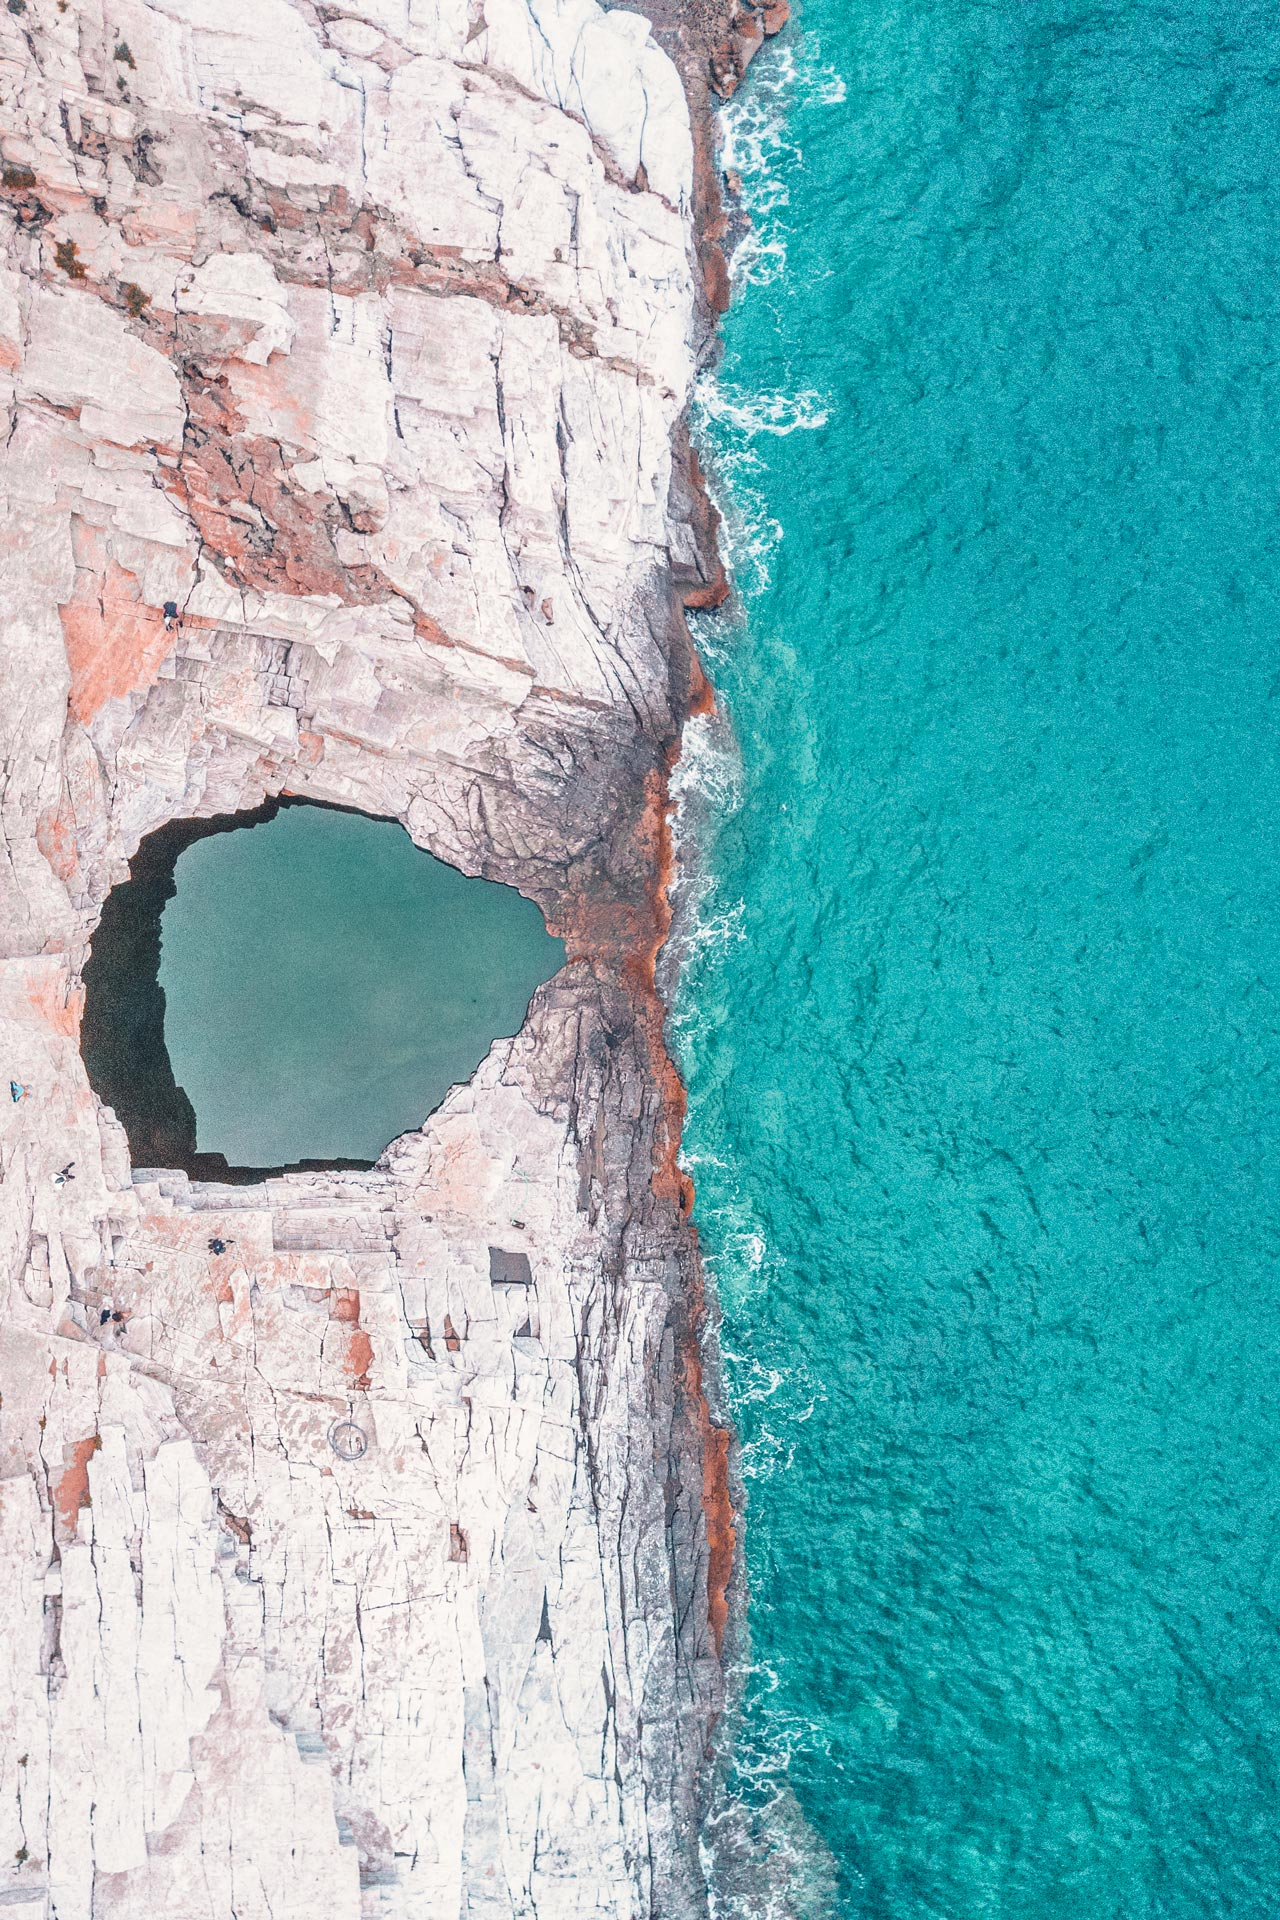 It takes just one glimpse of the natural rock pool known as Aphrodite's Tear to understand how Giola has assumed mythical status